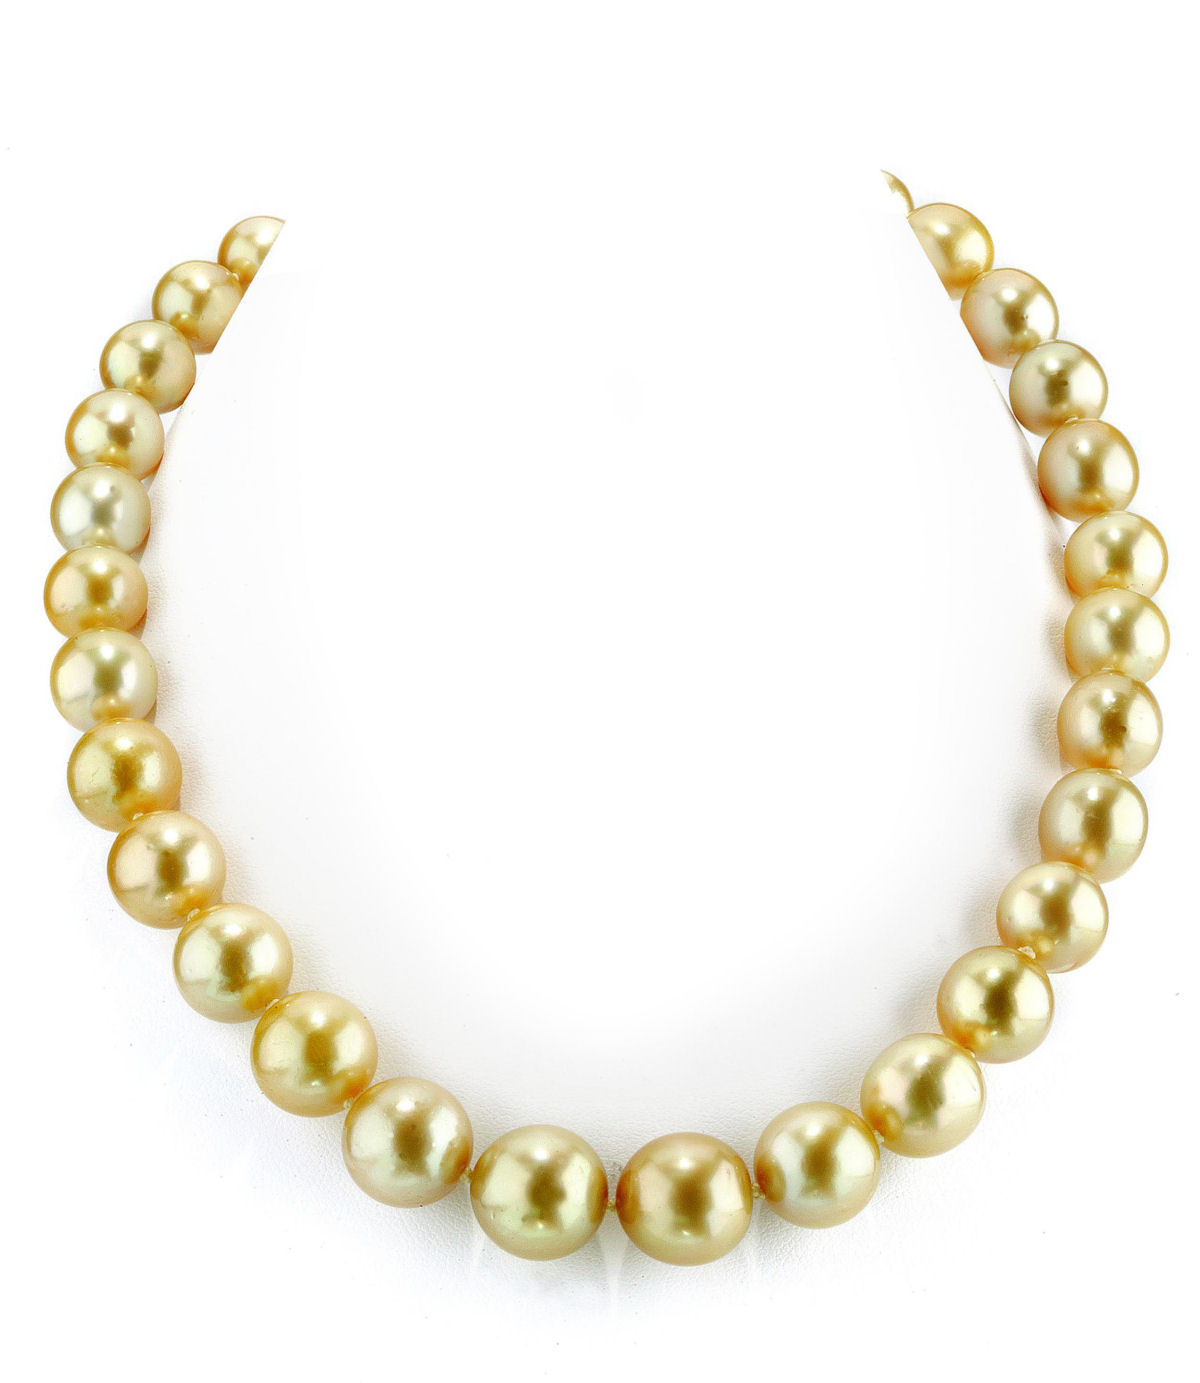 11-13mm Golden South Sea Pearl Necklace